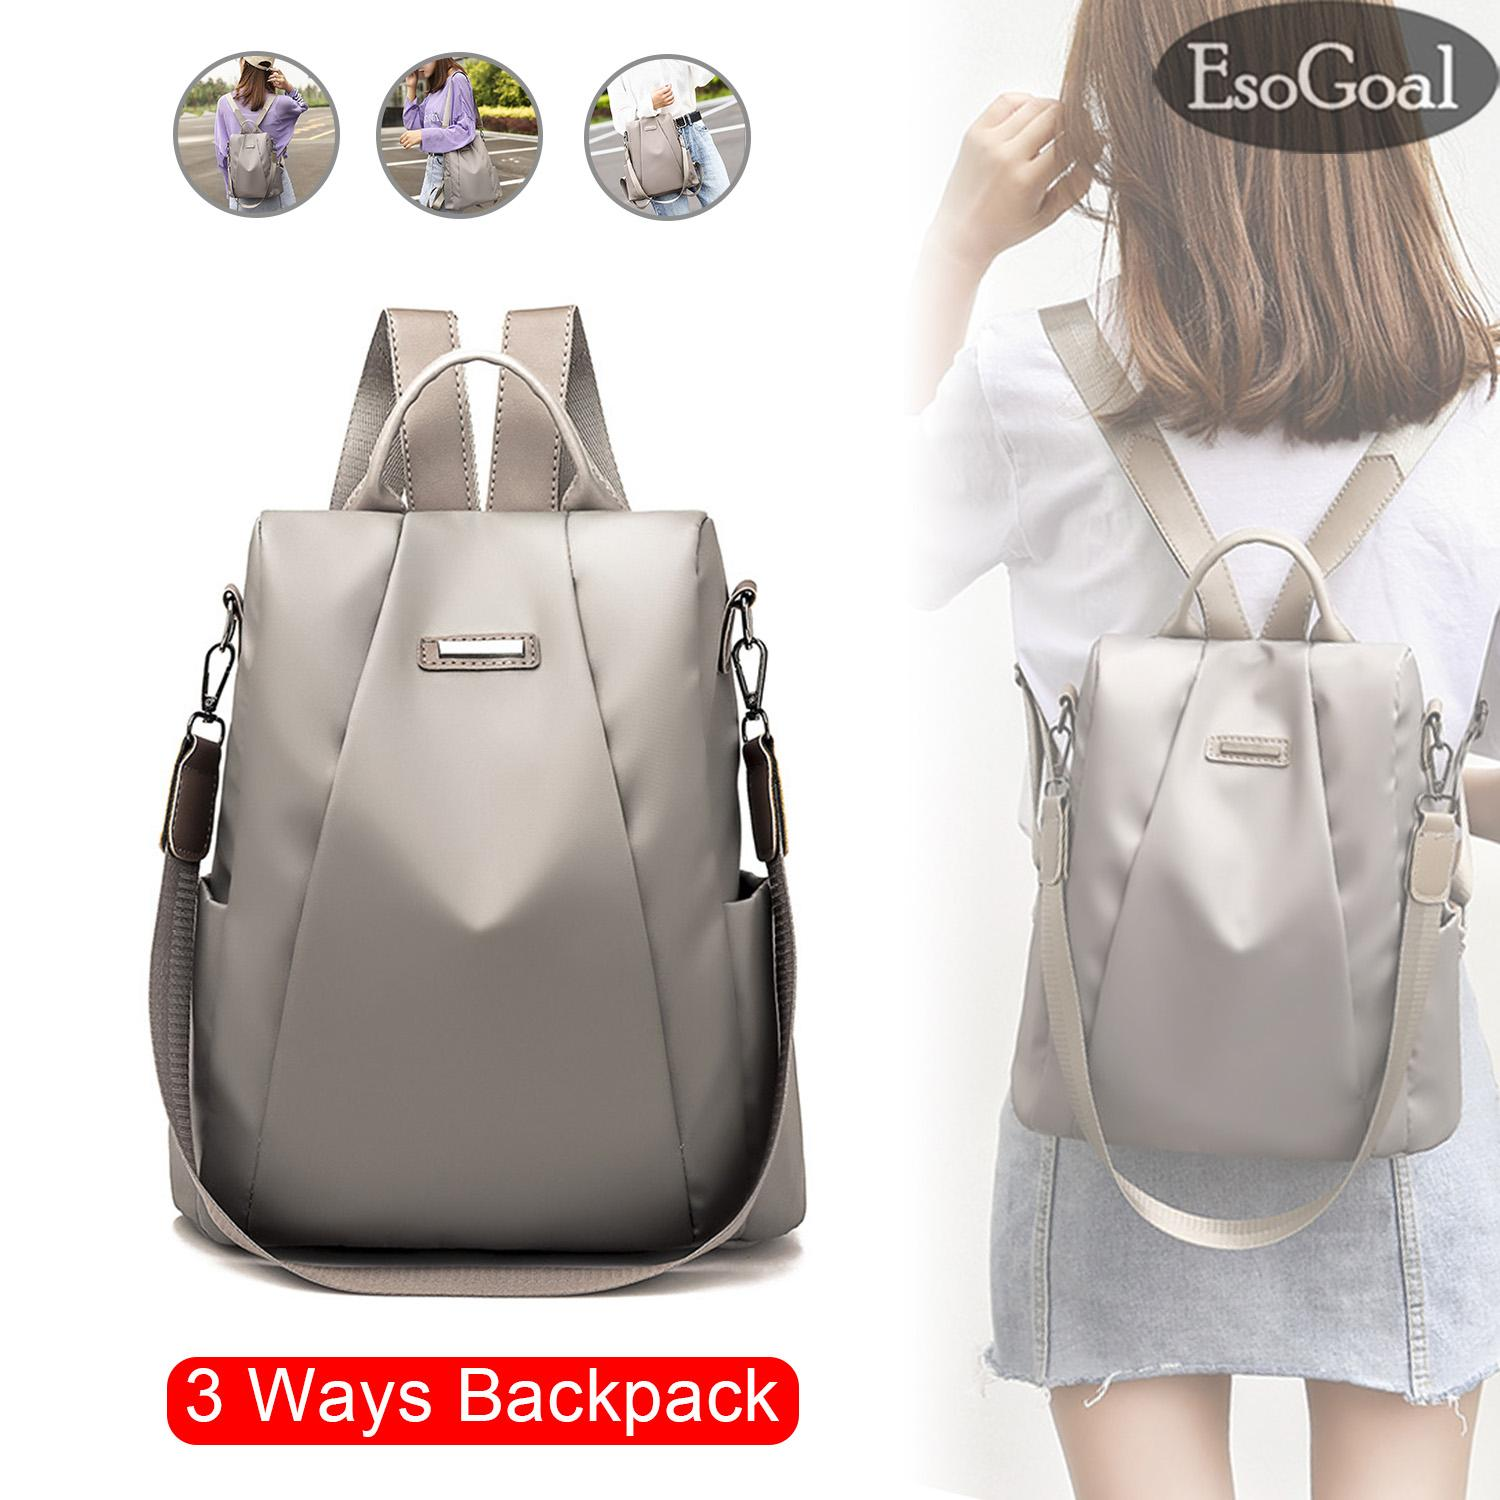 EsoGoal Fashion Women Backpack Shoulder Bag Korea Style Anti-theft Backpack  College School Bag For d8d41ee00efbc